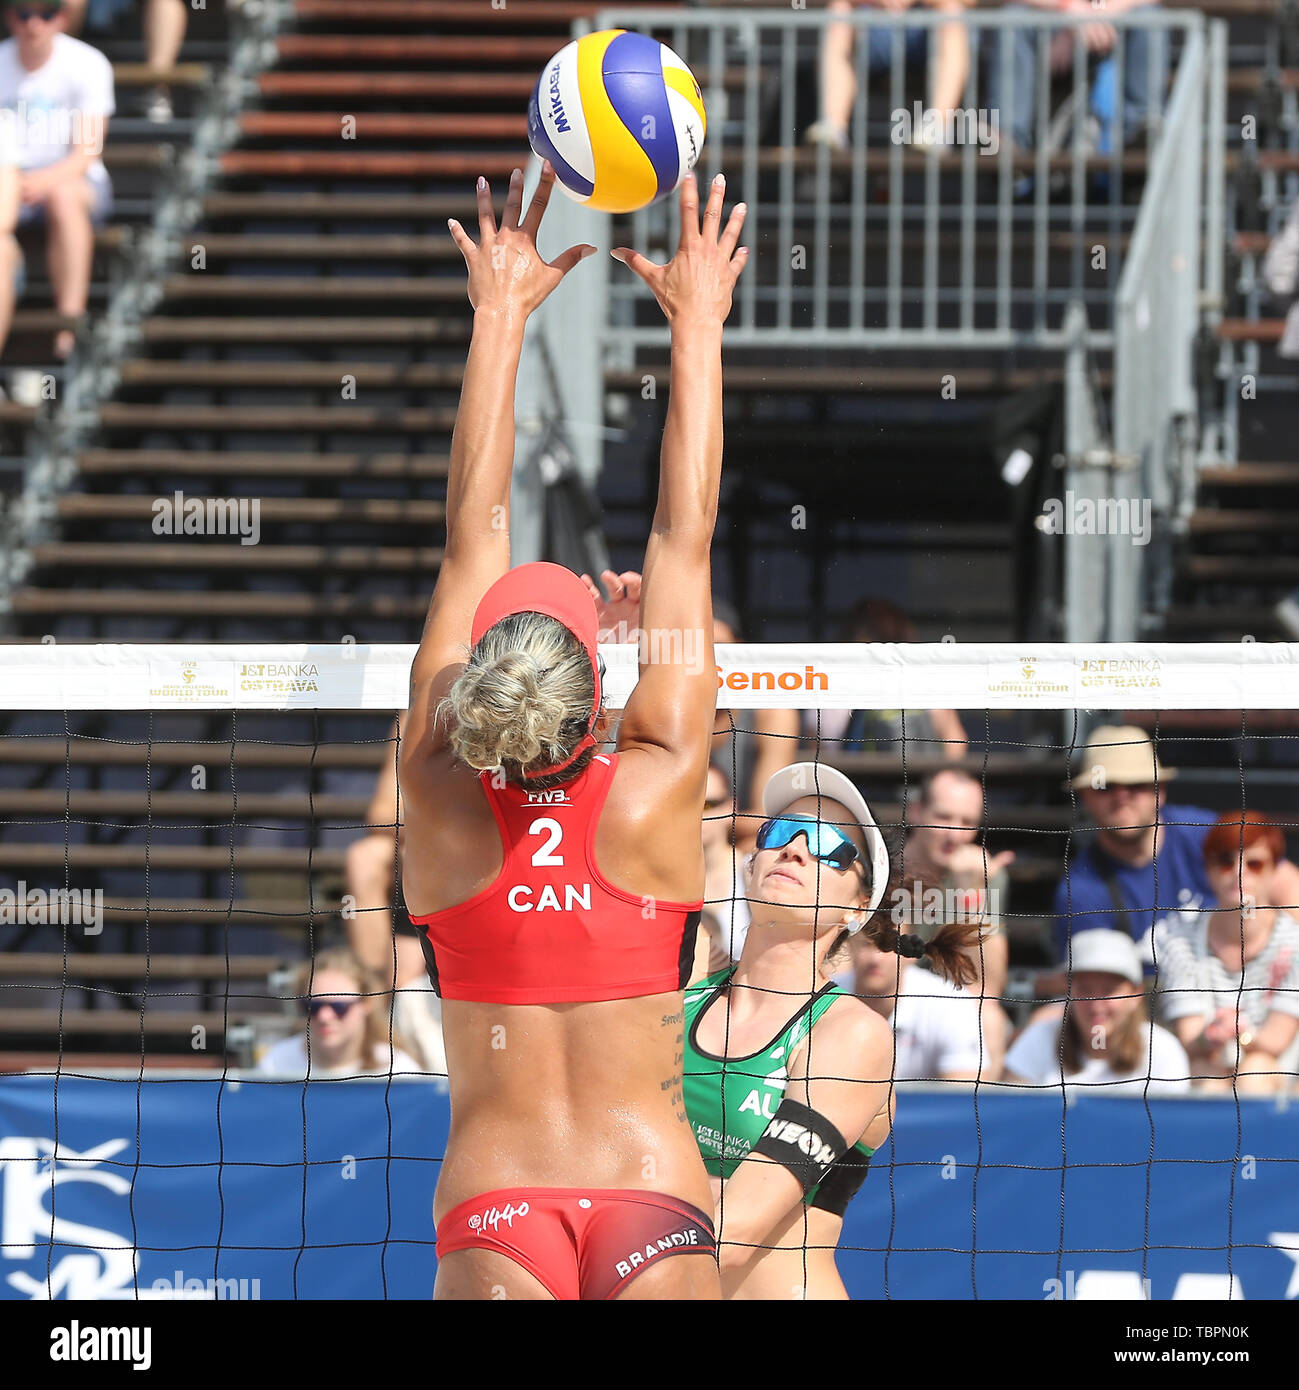 Ostrava, Czech Republic. 01st June, 2019. L-R Brandie Wilkerson (Canada) and Lena Plesiutschnig (Austria) in action during the four-star J&T Banka Ostrava Beach Open 2019, part of the FIVB Beach Volleyball World Tour, in Ostrava, Czech Republic, on July 1, 2019. Credit: Petr Sznapka/CTK Photo/Alamy Live News Stock Photo